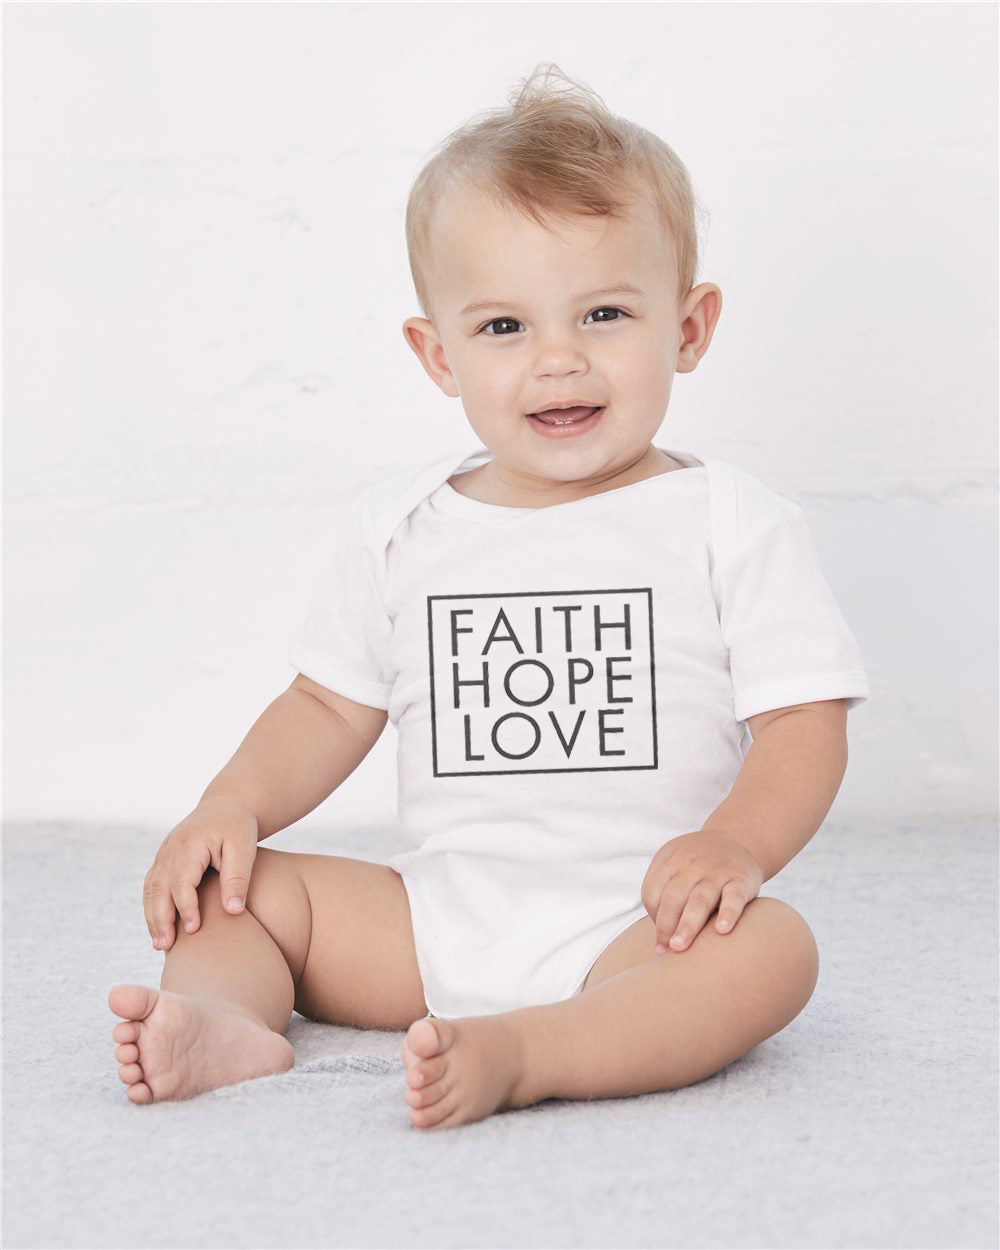 Faith Hope Love Premium Classic Tee Made In The USA For The Family